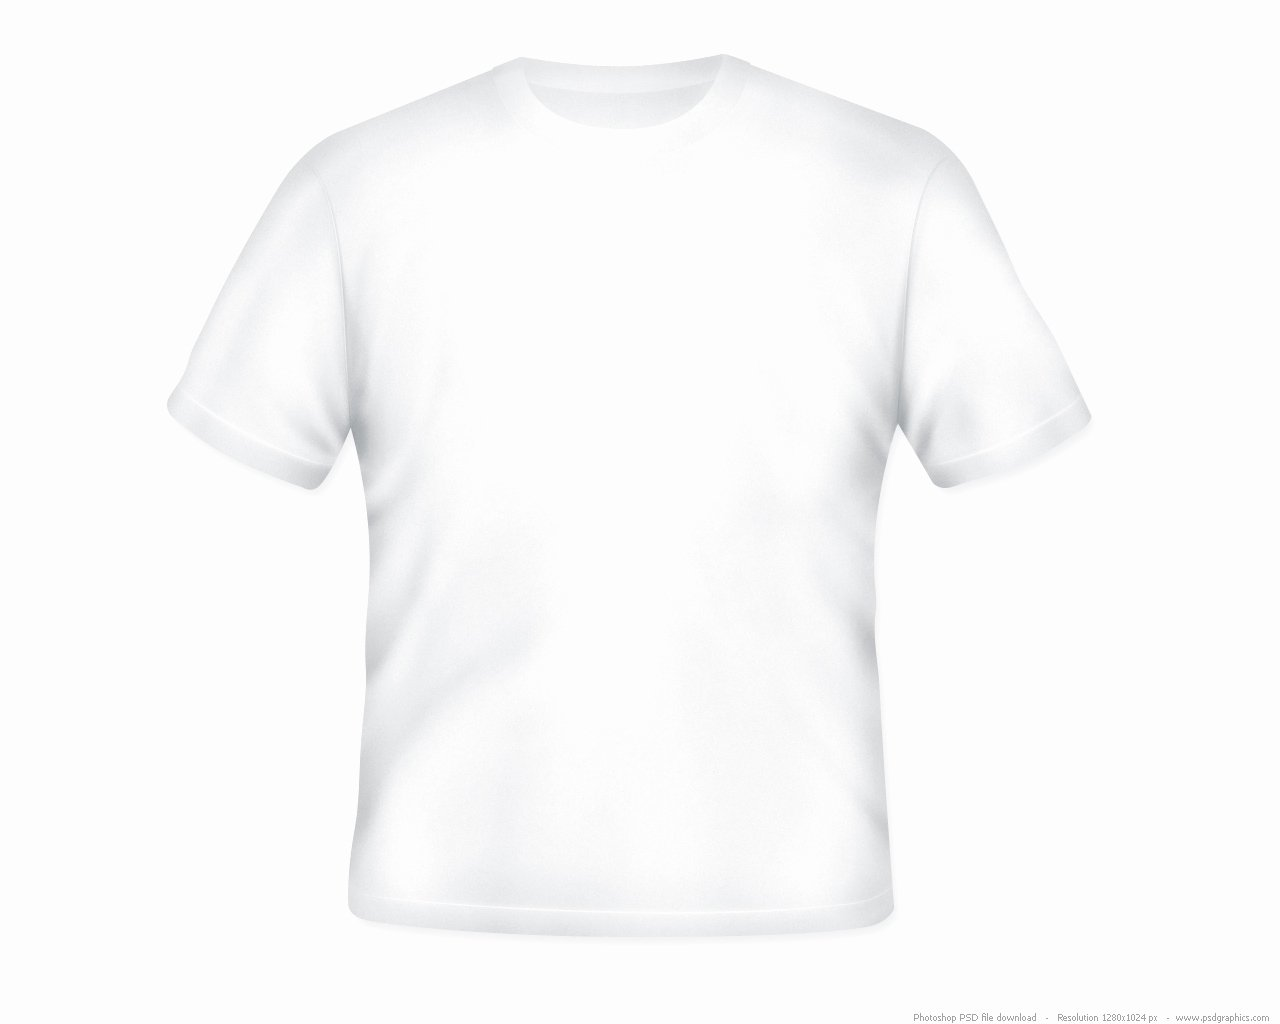 T Shirt Photoshop Template Lovely Blank White T Shirt Psd